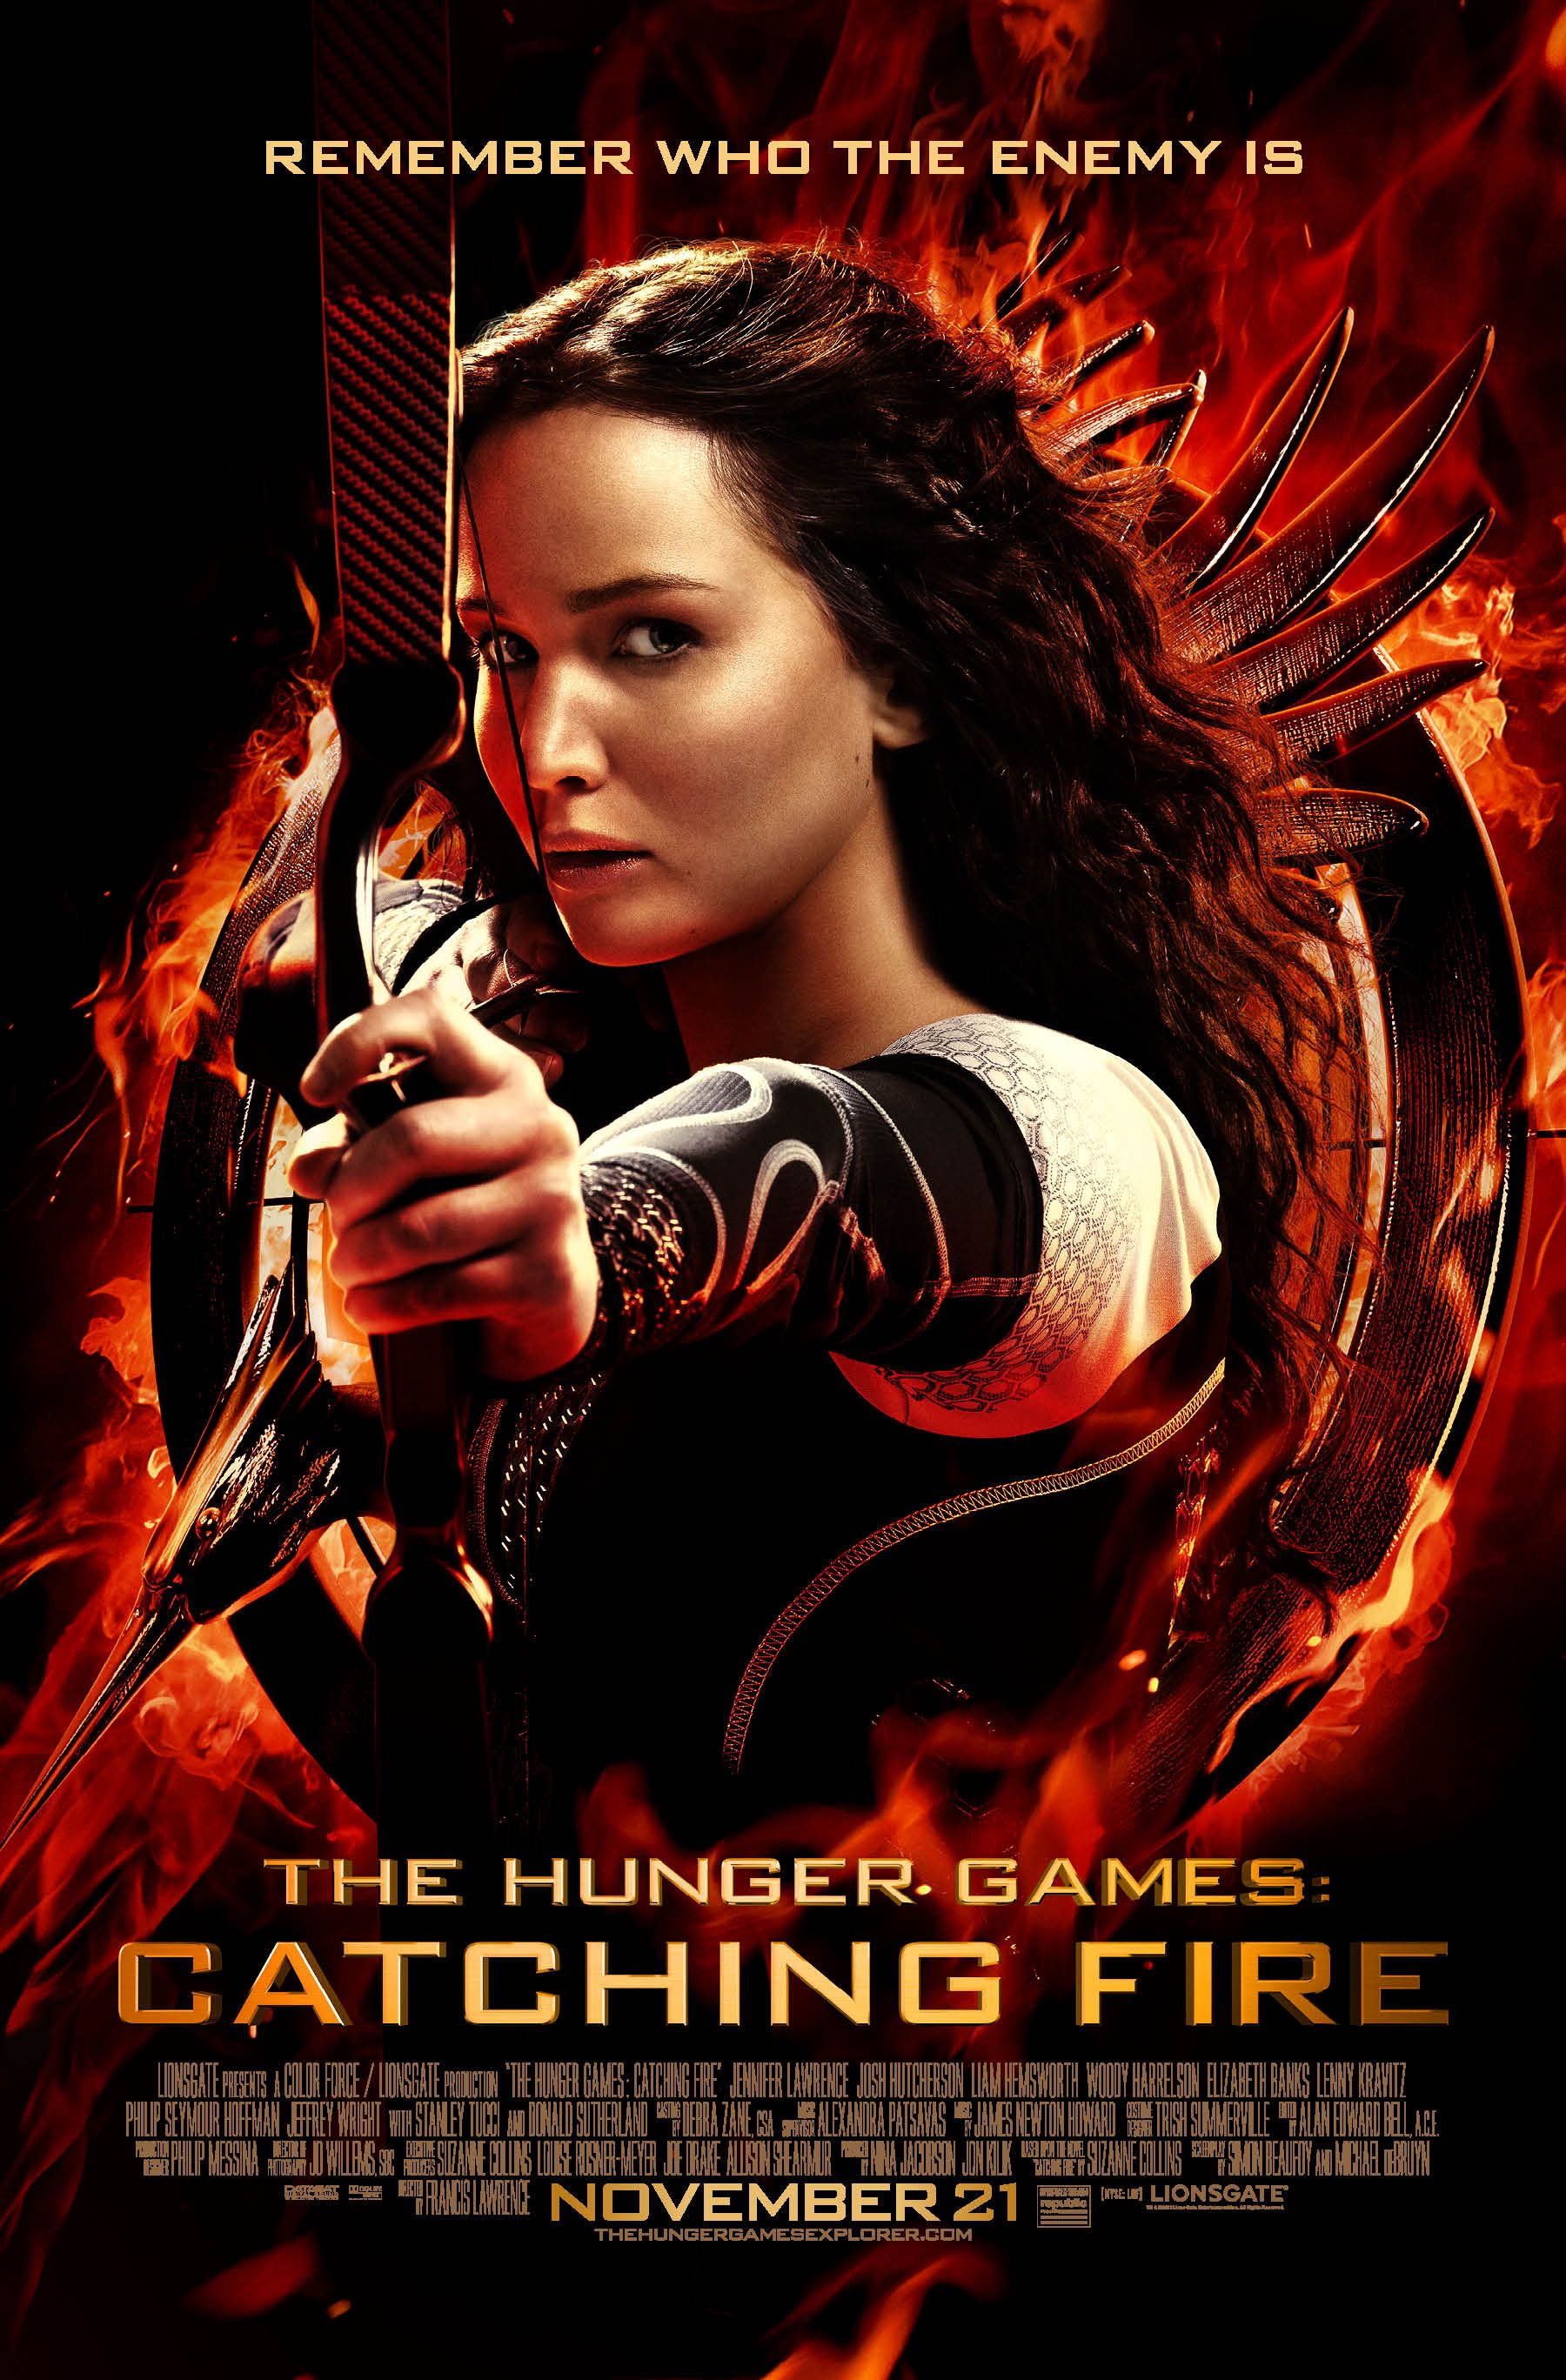 Download The Hunger Games Catching Fire 2013 720p Bluray X264 Yify The Hunger Games Catching Fire 720p Hunger Games Catching Fire Fire Movie Hunger Games